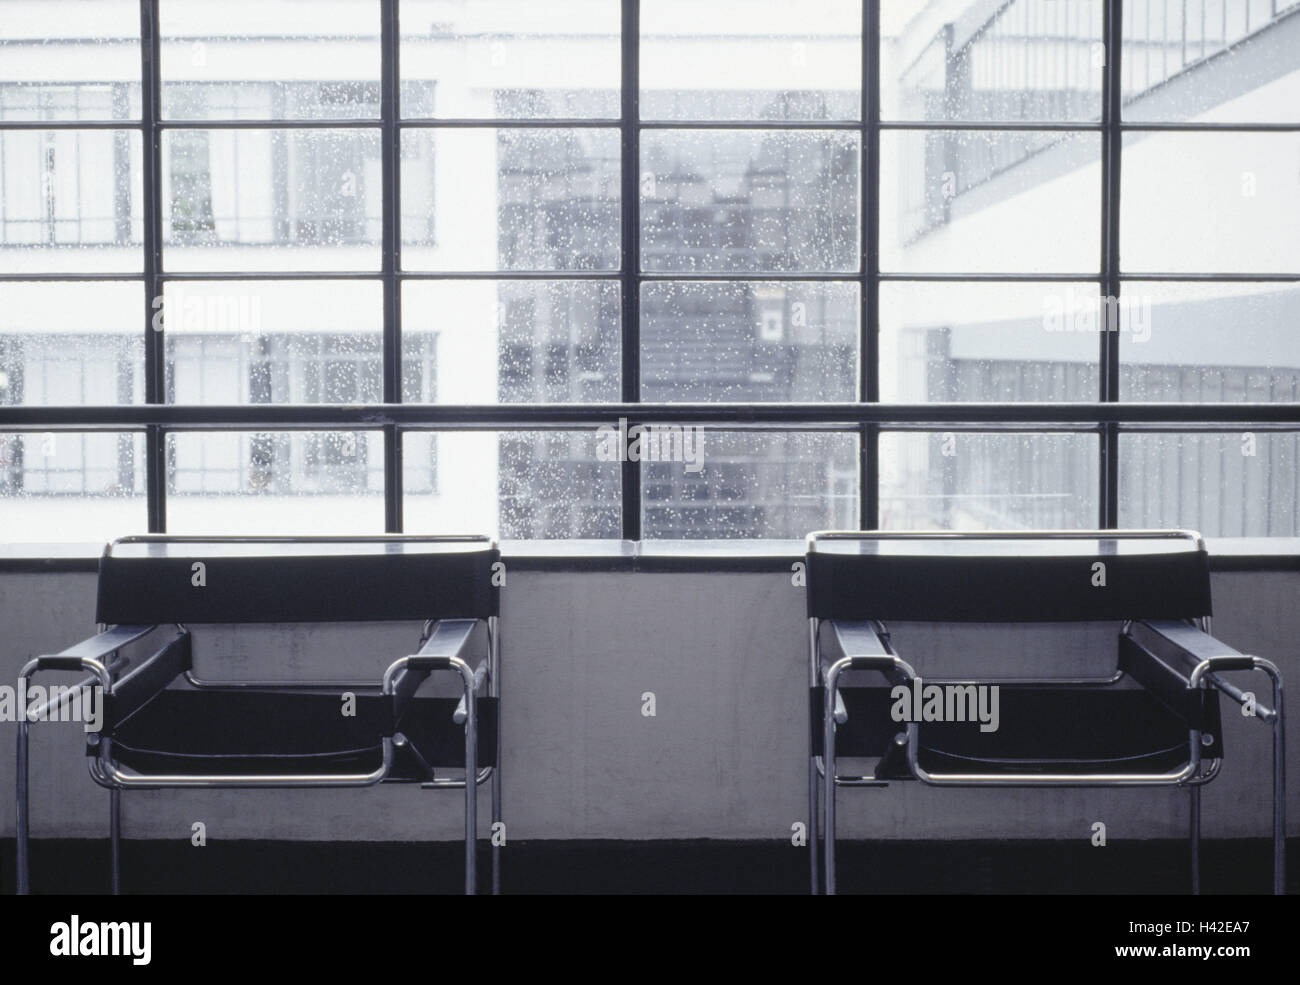 Amazing Hall Chairs Empty Window Front Disks Wet Architecture Gmtry Best Dining Table And Chair Ideas Images Gmtryco